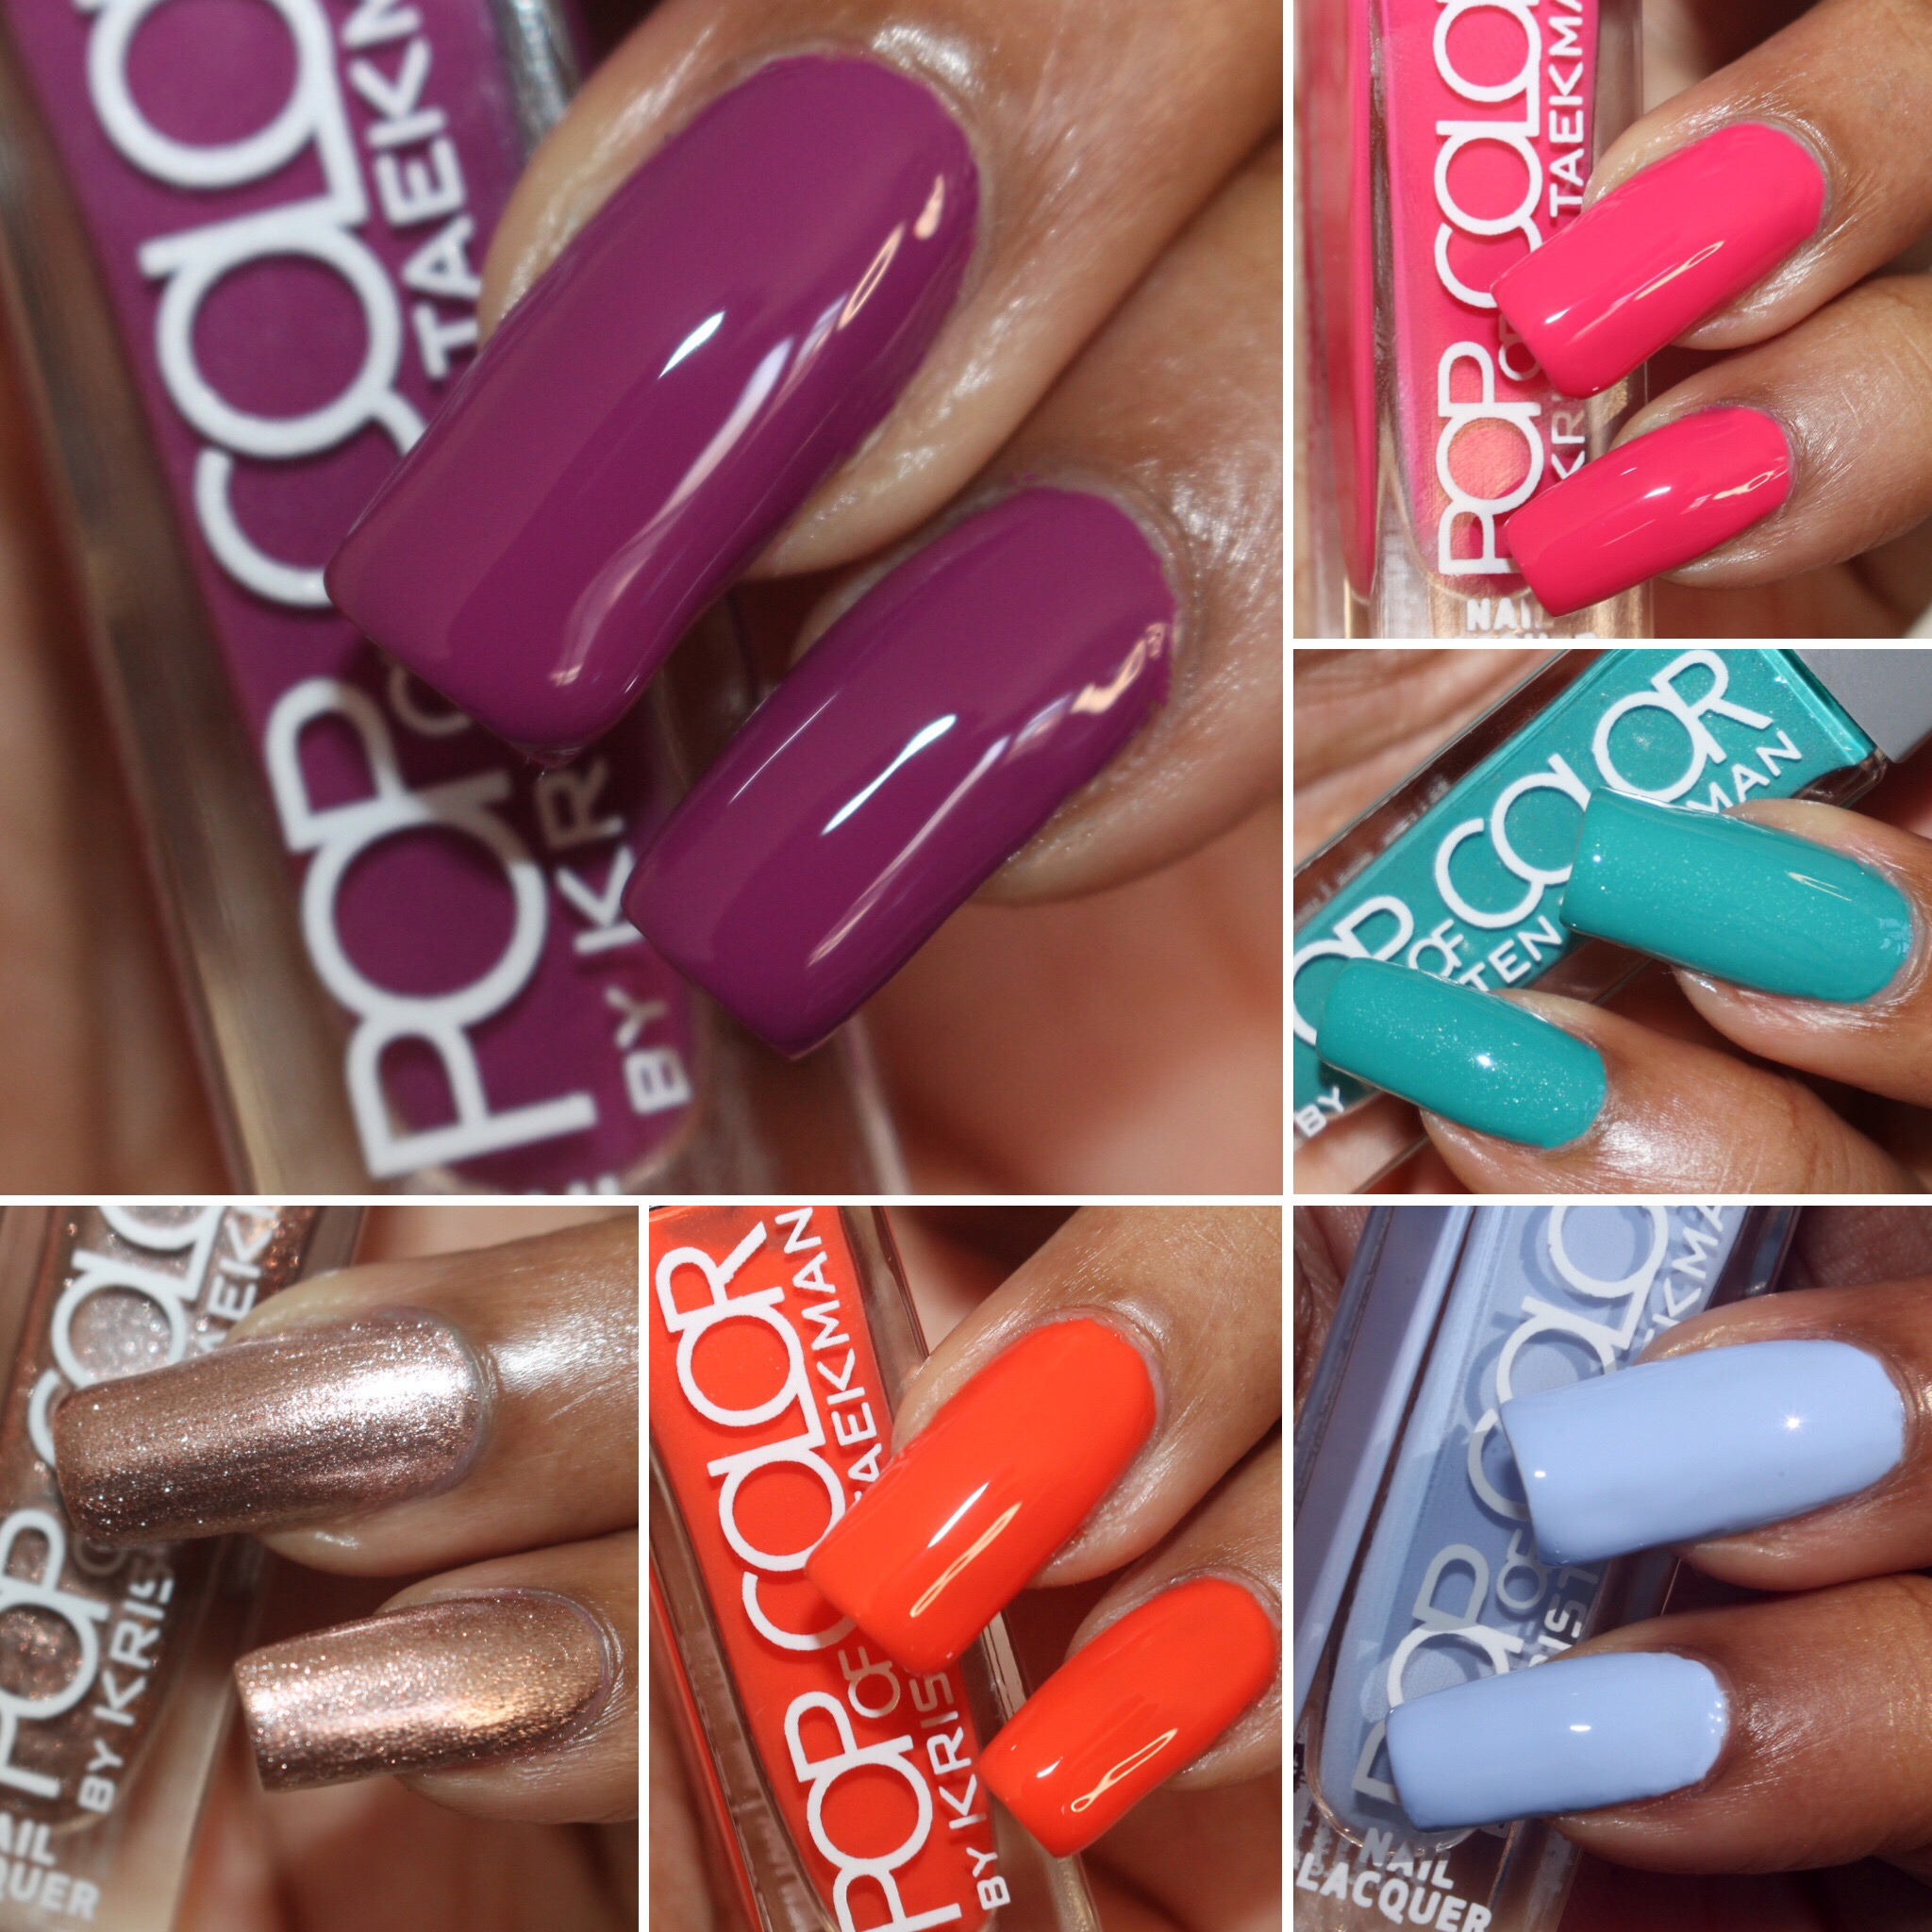 Pop Of Color By Kristen Taekman Nail Polish Review And